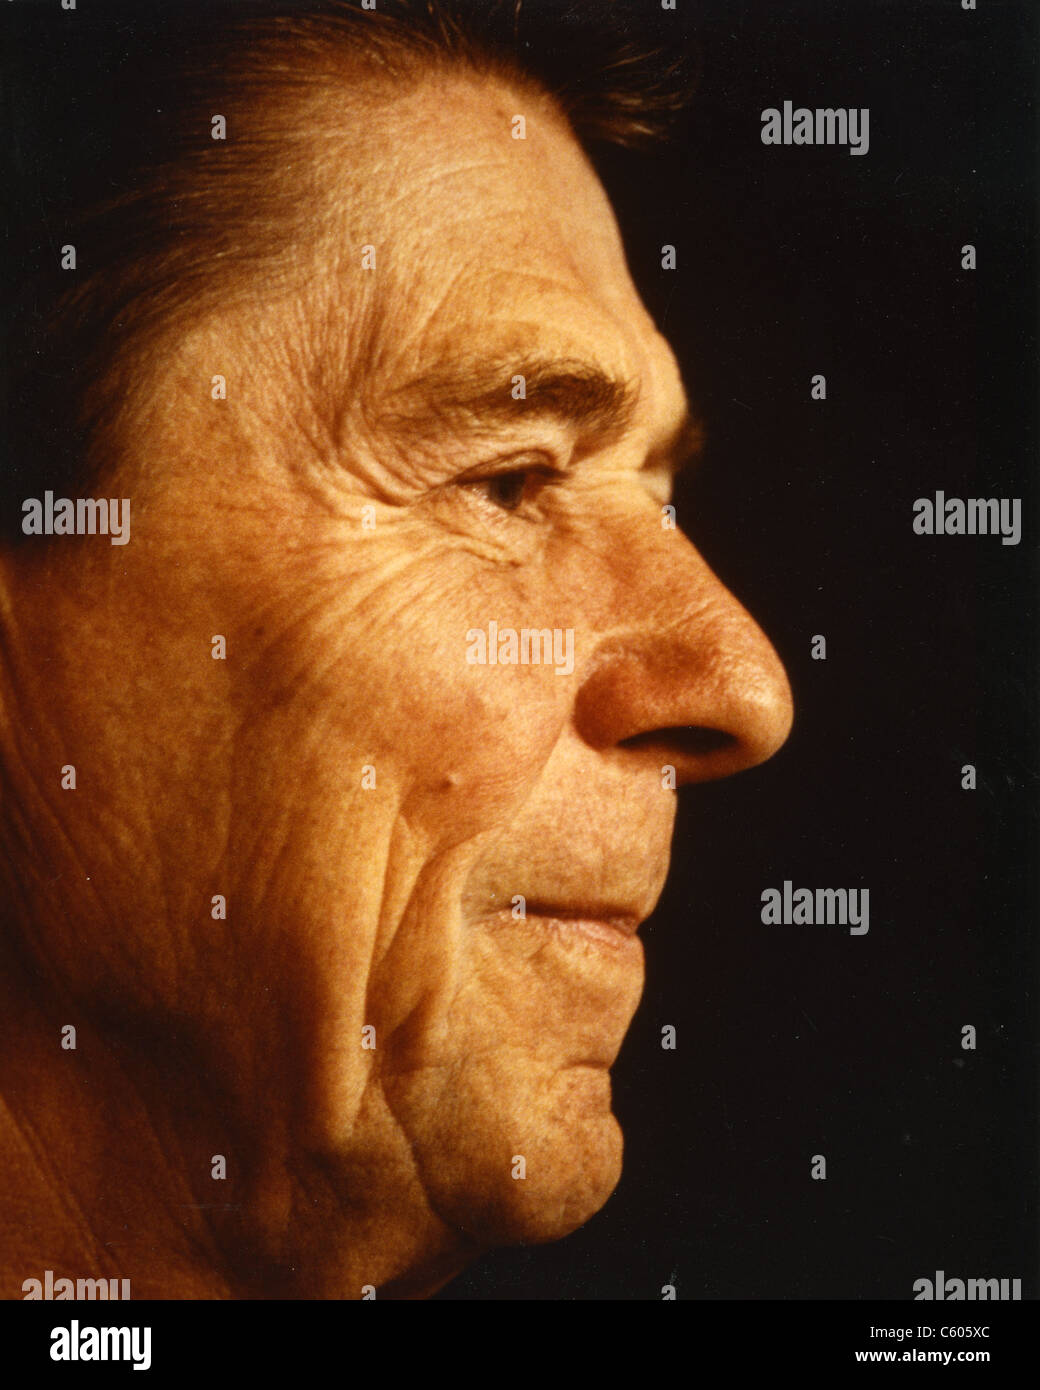 RONALD REAGAN (1911-2004)  as 40th President of the United States Stock Photo